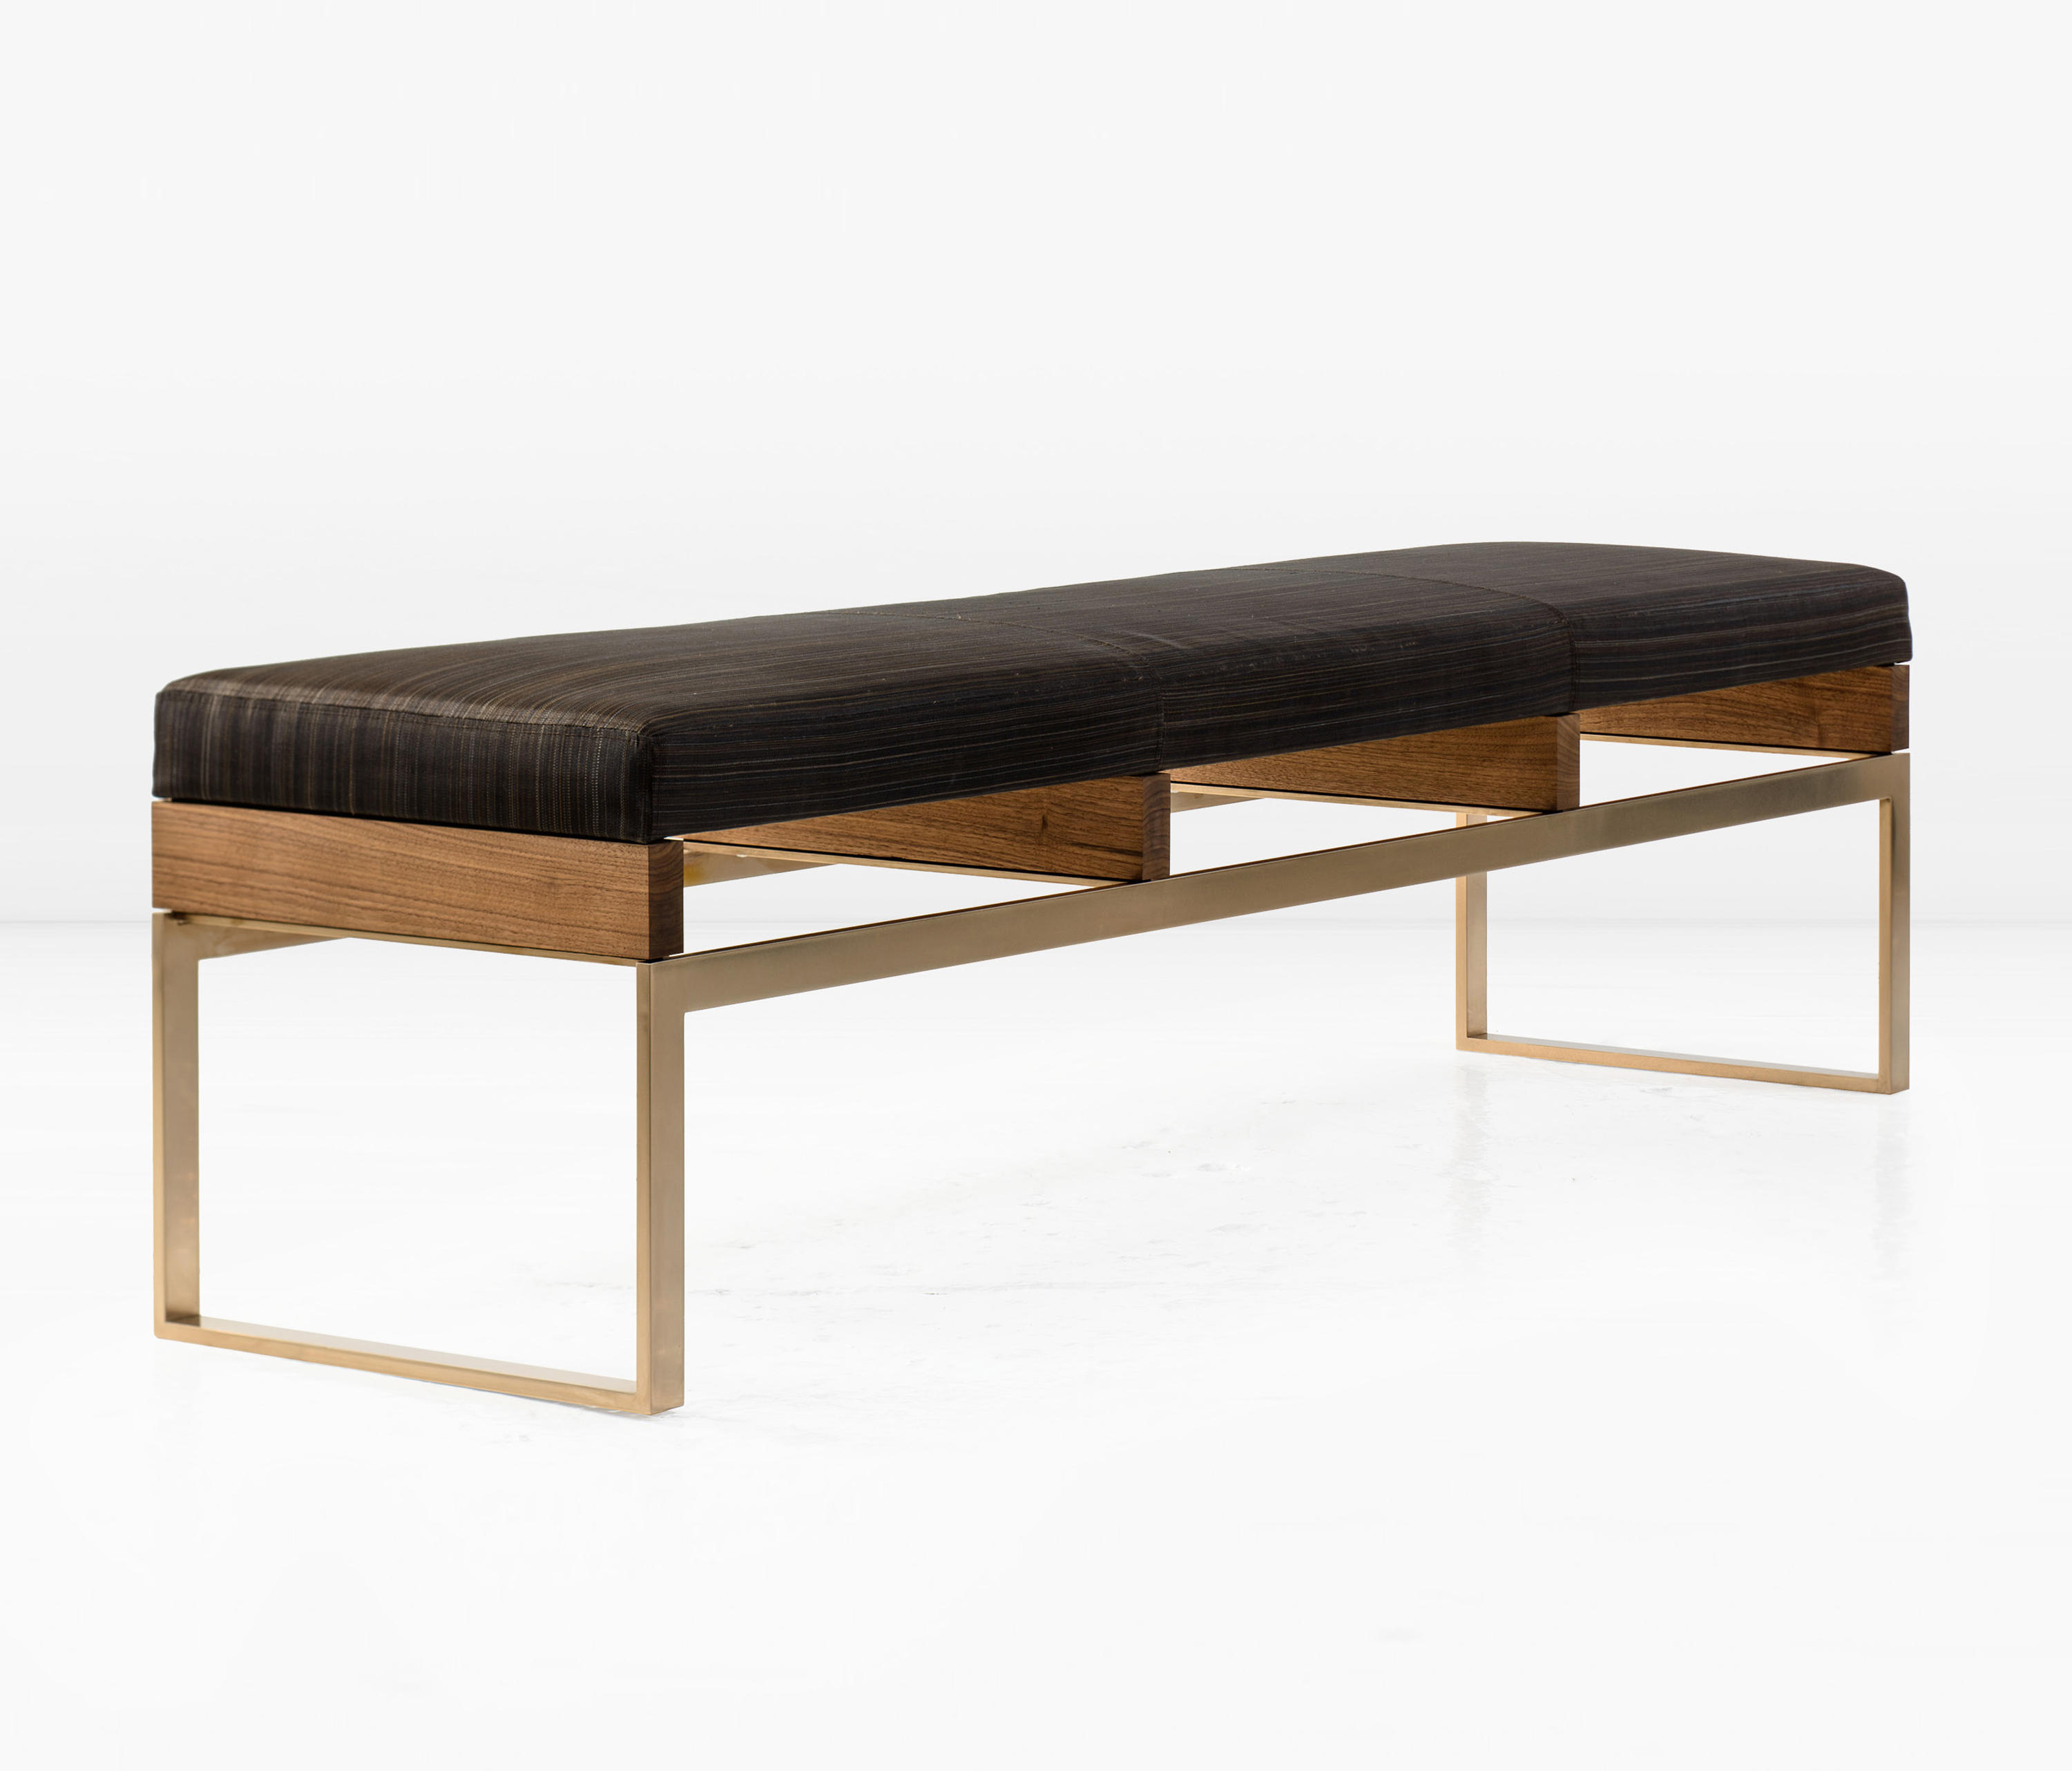 Maxim bench upholstered benches from khouri guzman bunce lininger architonic Padded benches